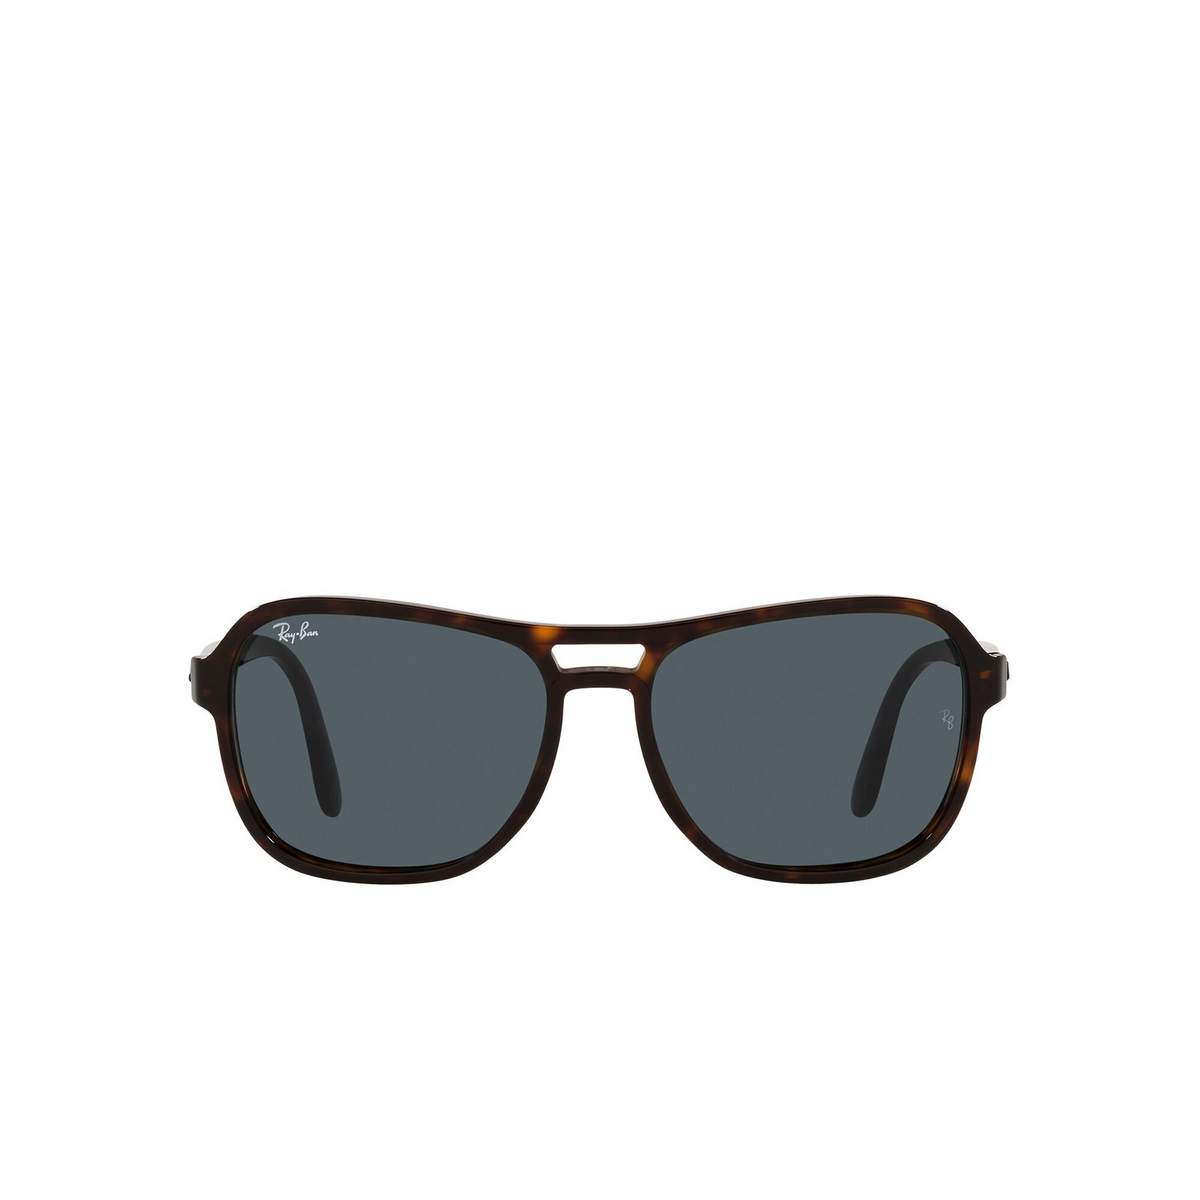 Ray-Ban® Square Sunglasses: State Side RB4356 color Havana 902/R5 - front view.